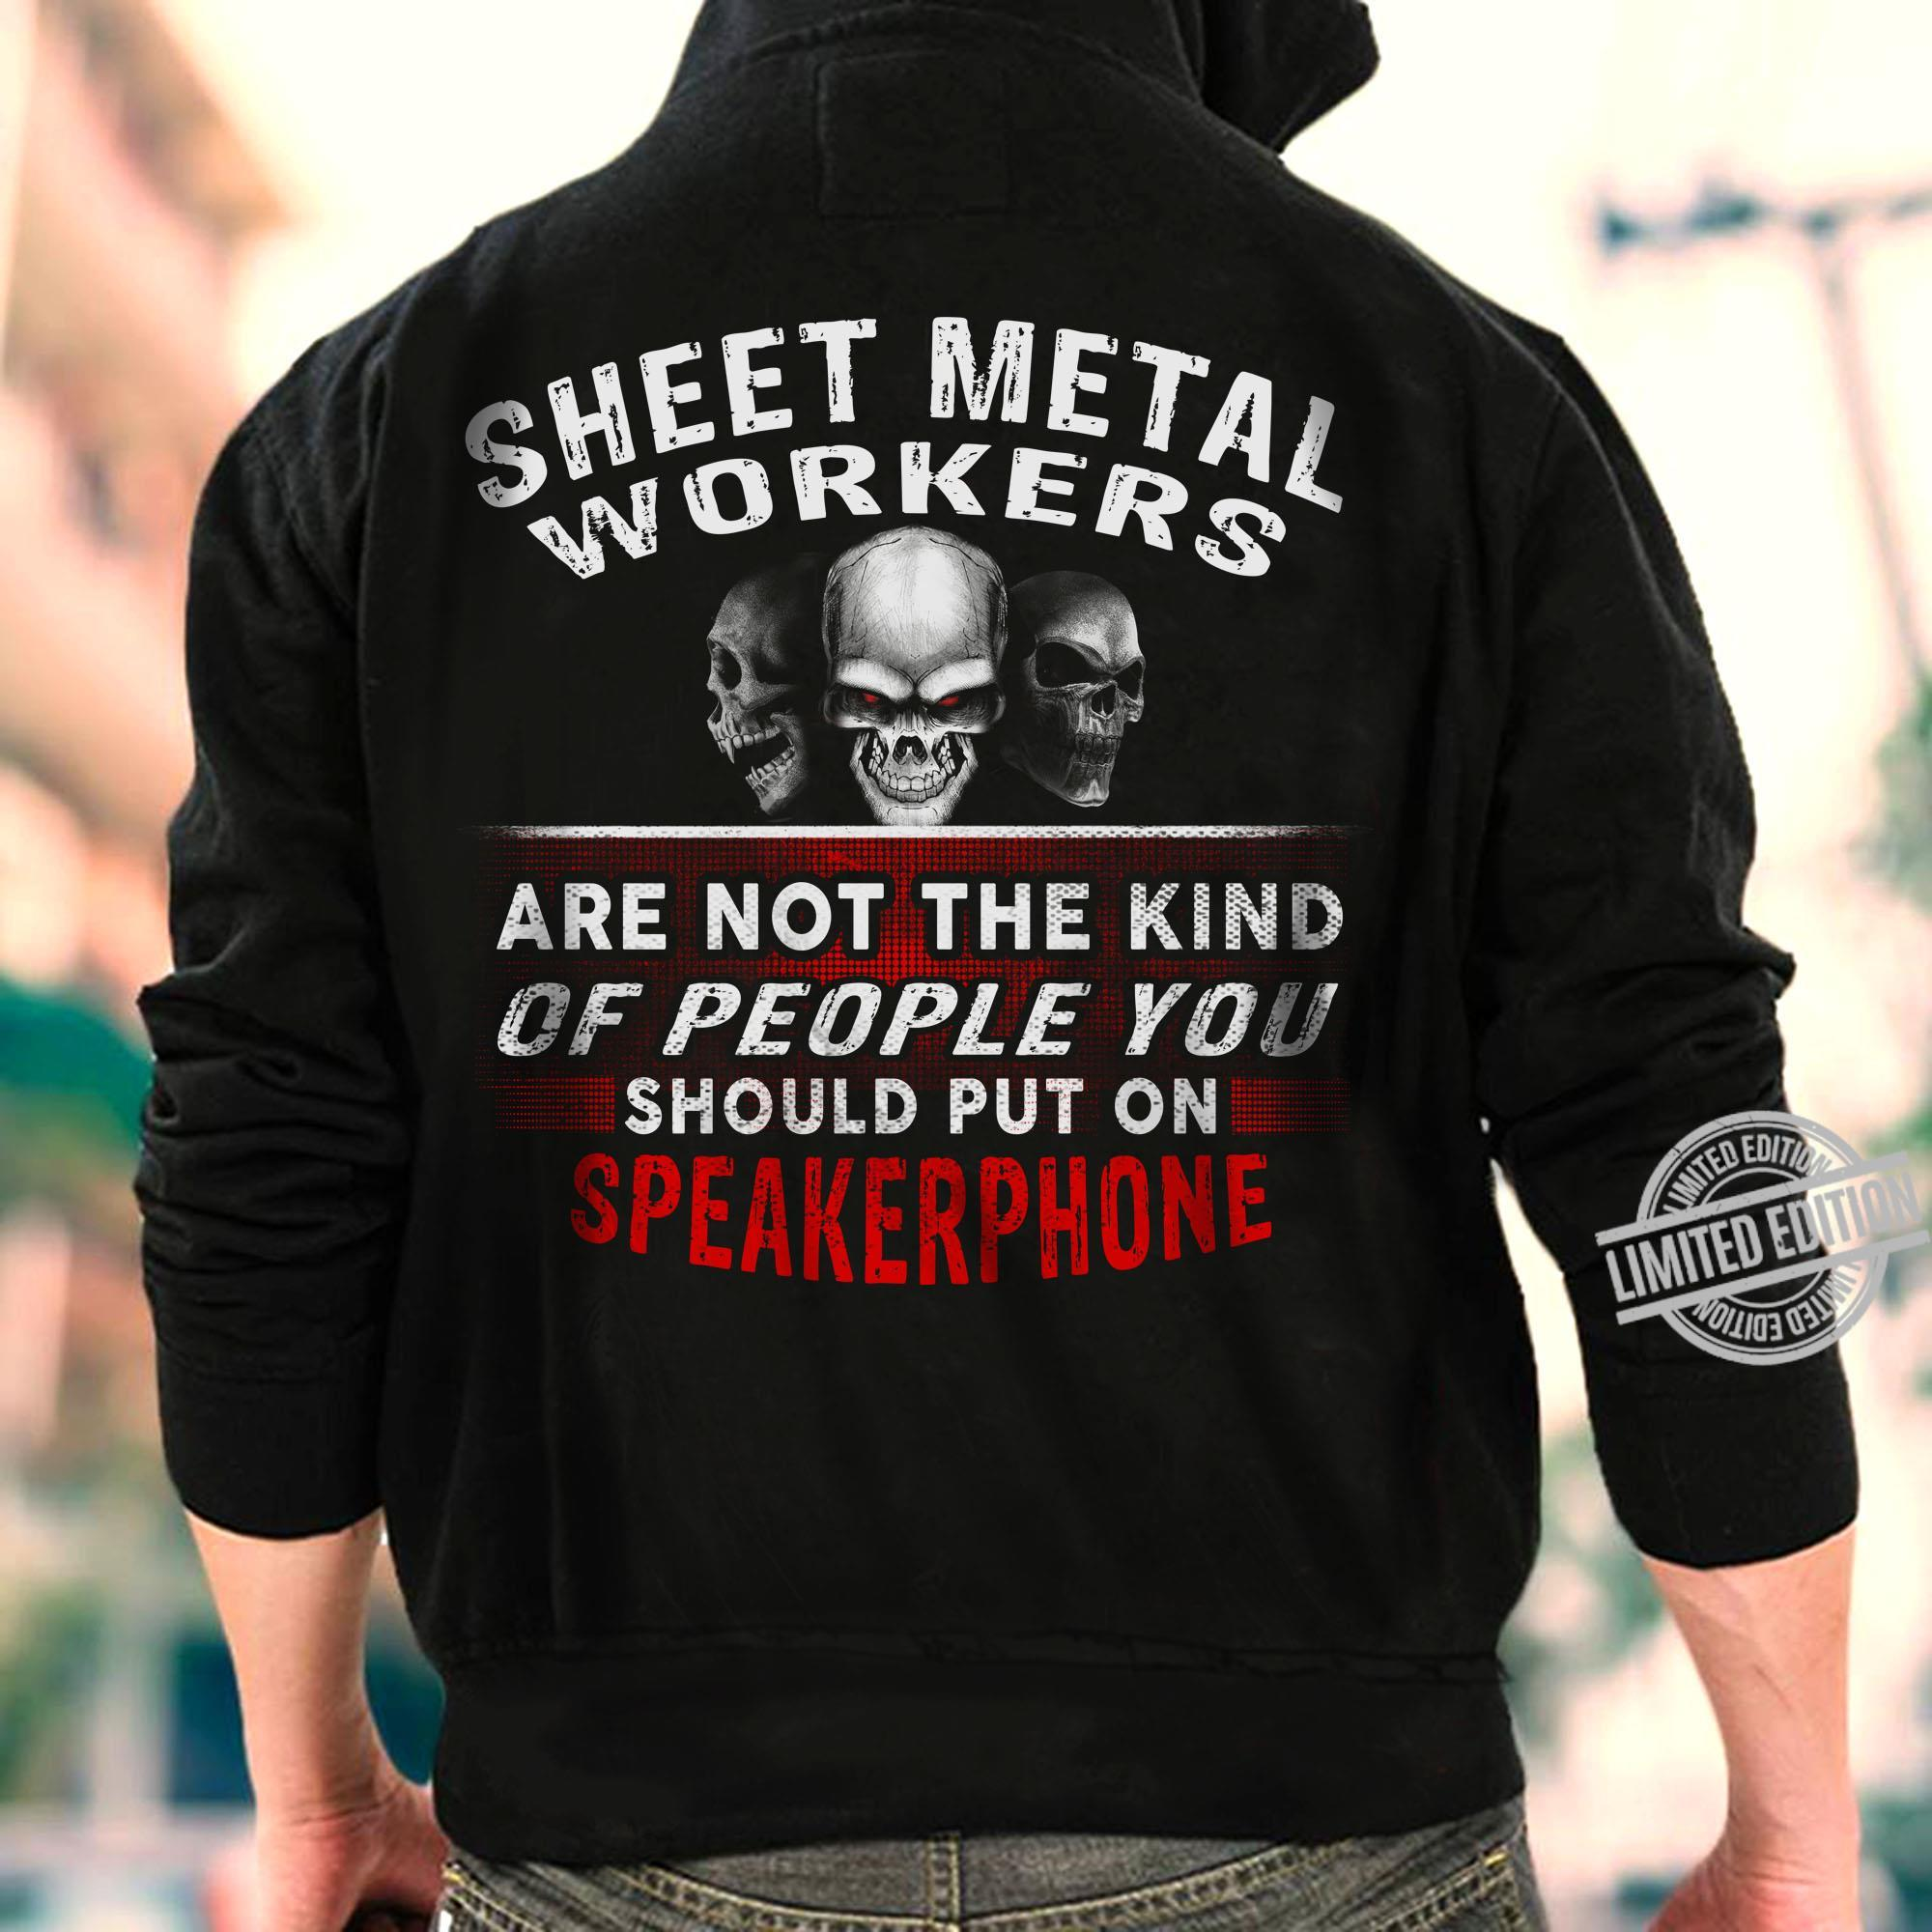 Sheet Metal Workers Are Not The Kind Of People You Should Put On Speakerphone Shirt